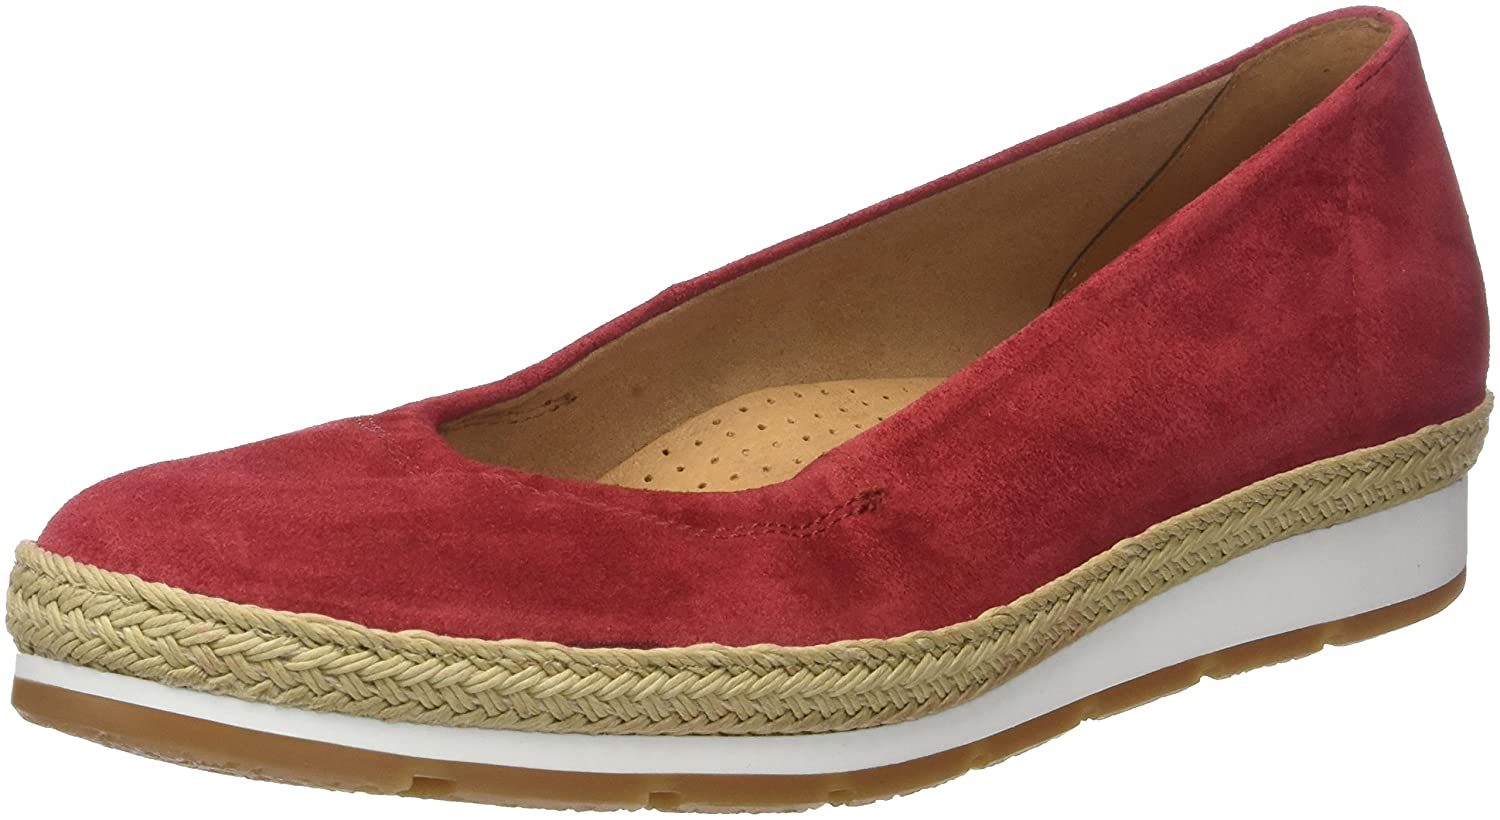 Gabor Jute/S.n/W) Shoes Comfort Rouge Sport, Ballerines Femme B072SWLCB9 Rouge (Red Jute/S.n/W) cceb13e - robotanarchy.space